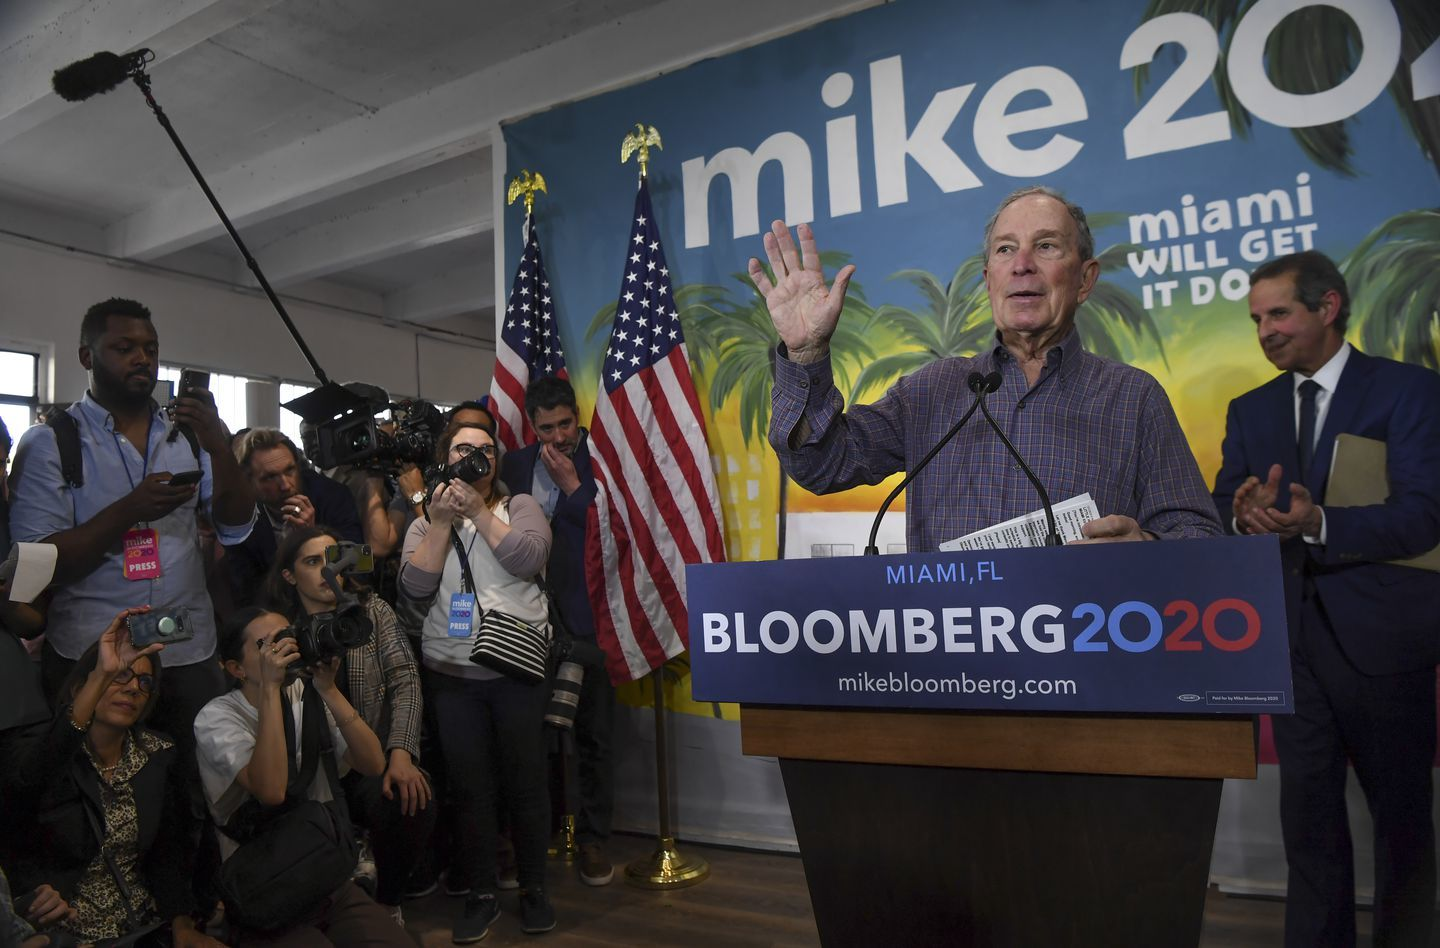 Mike Bloomberg is suspending his presidential campaign, says he's endorsing Biden 1